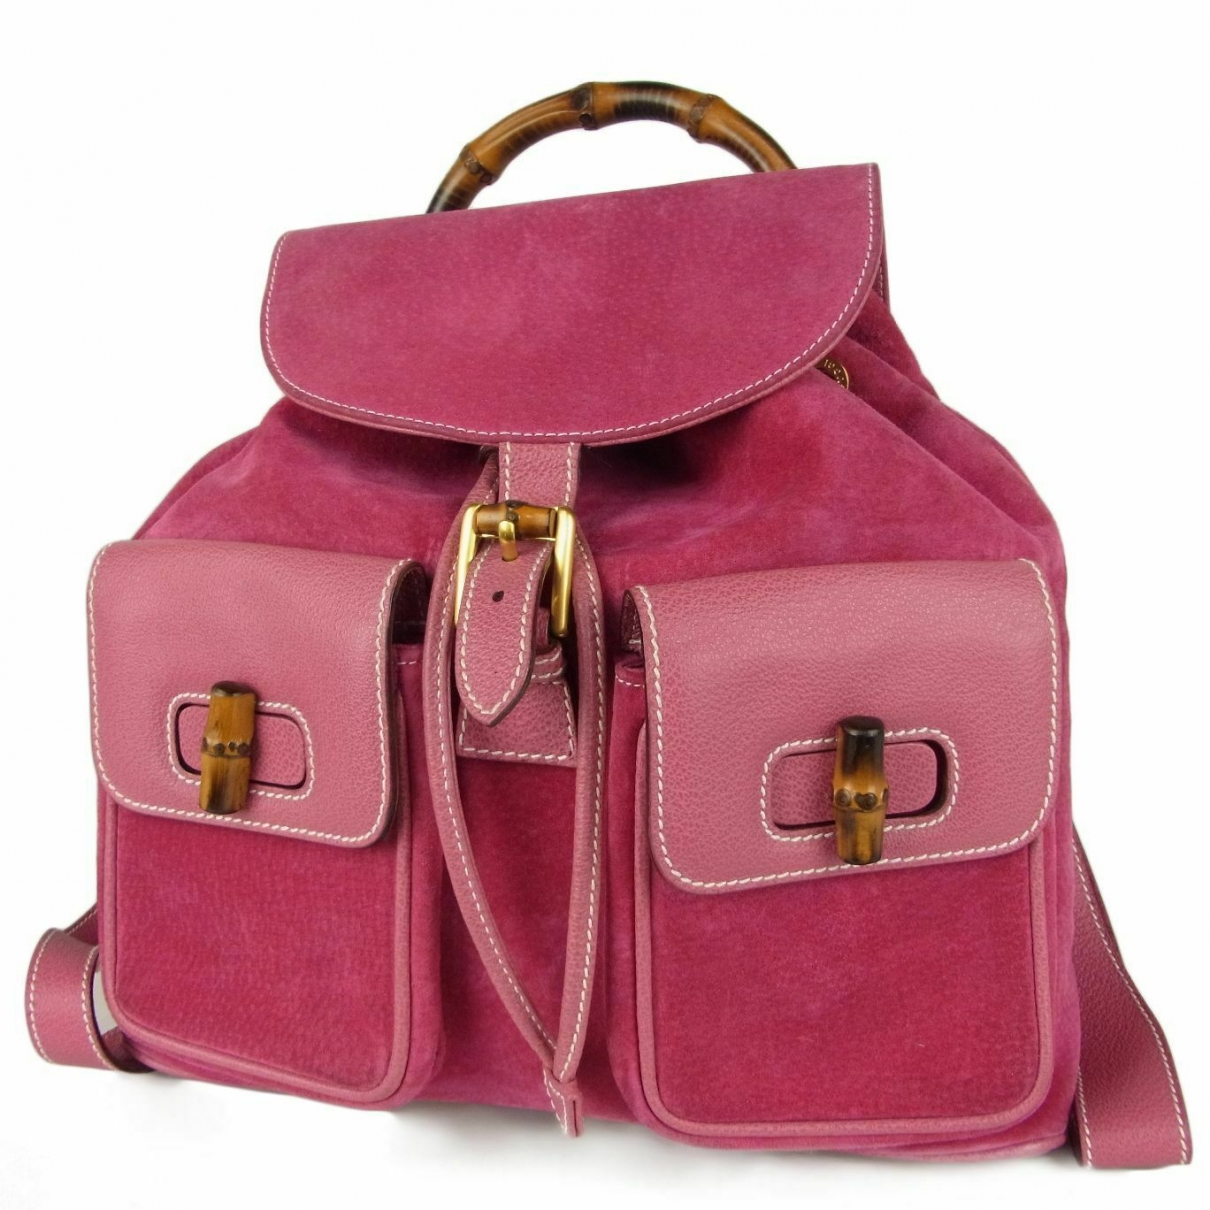 Gucci \N Pink Suede backpack for Women \N